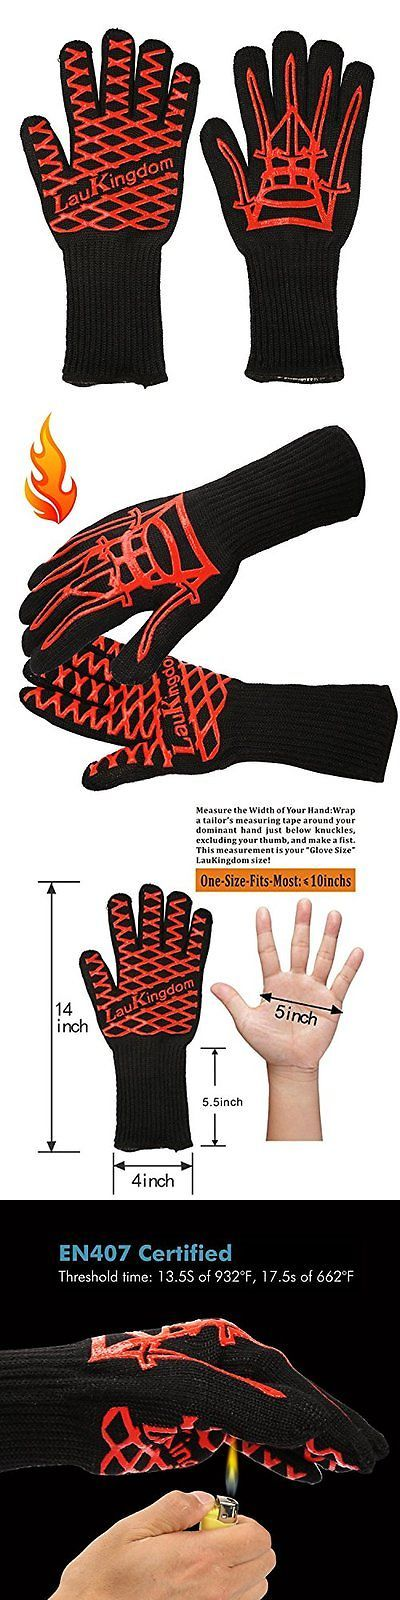 Oven Mitts and Potholders 20661: Laukingdom Cryogenic Gloves Bbq Grilling Cooking Glove 932F Extreme Heat Oven -> BUY IT NOW ONLY: $36.9 on eBay!